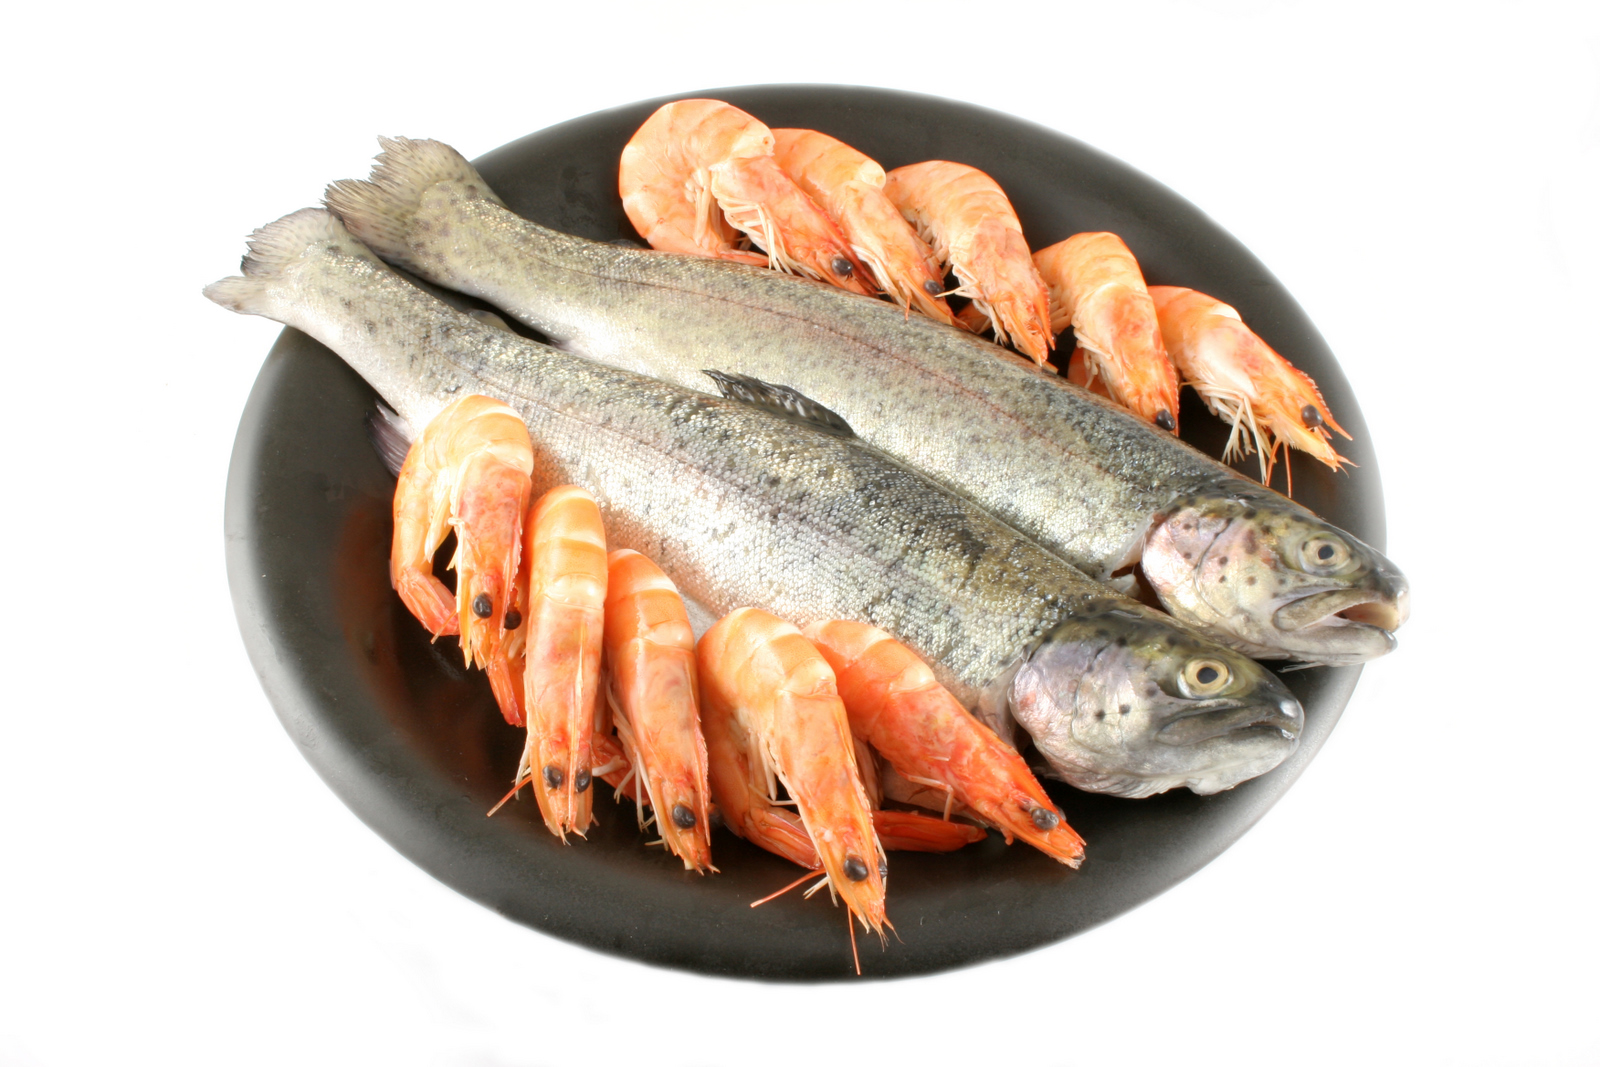 Trout and Shrimps